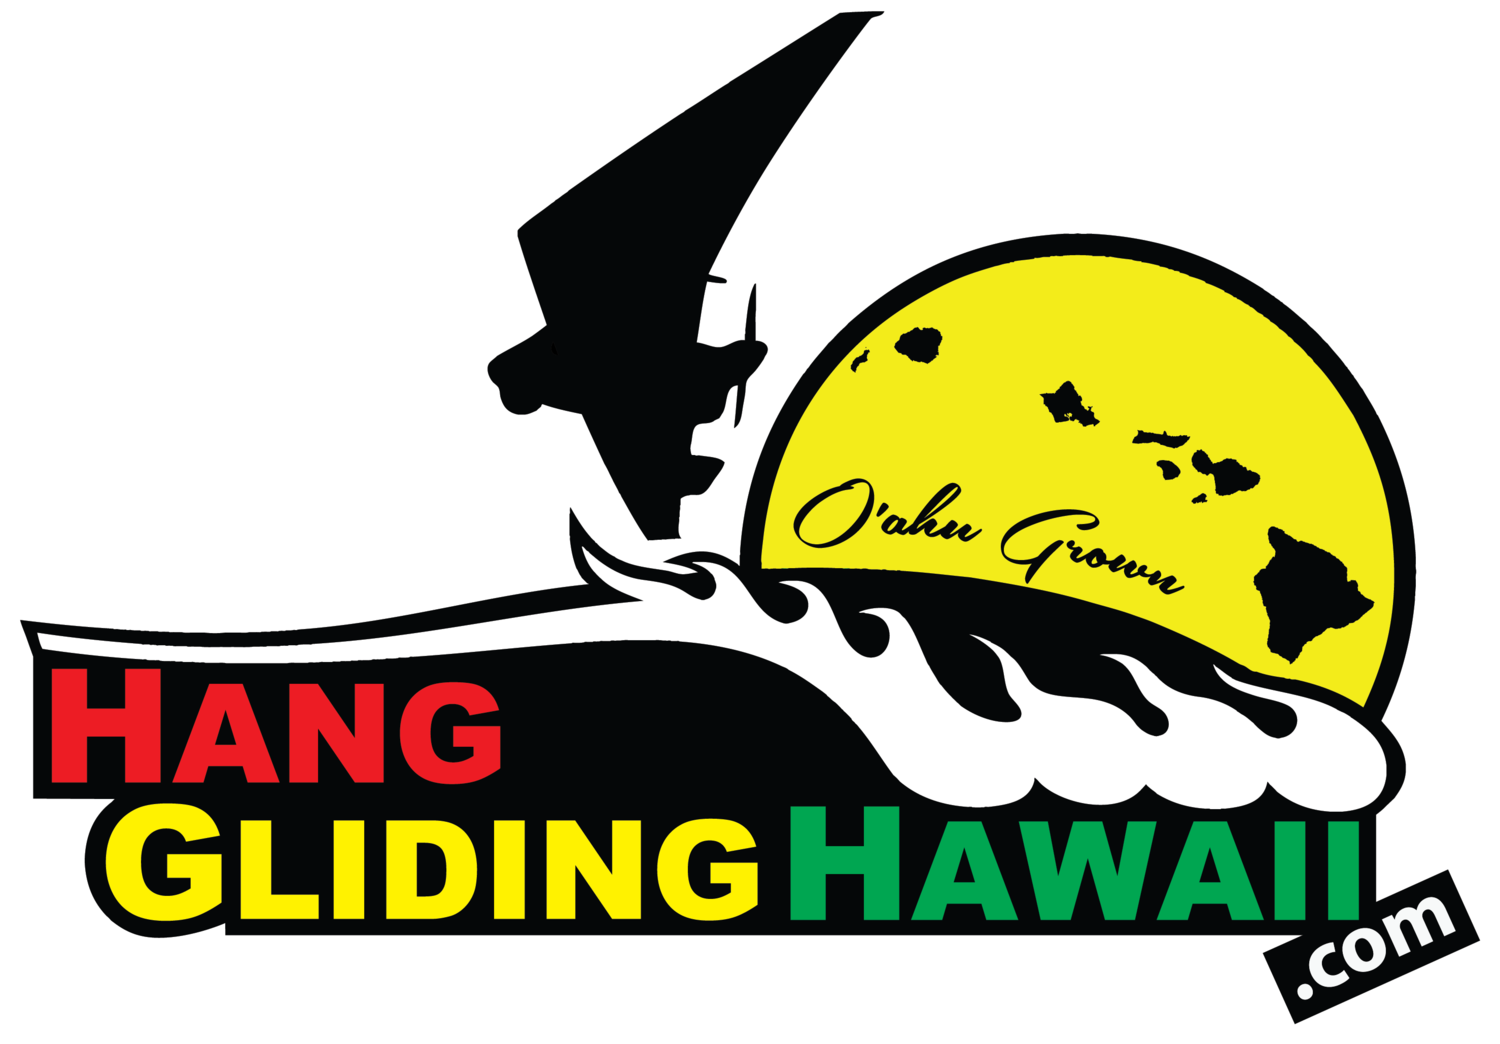 Hang Gliding Hawaii | Oahu's North Shore